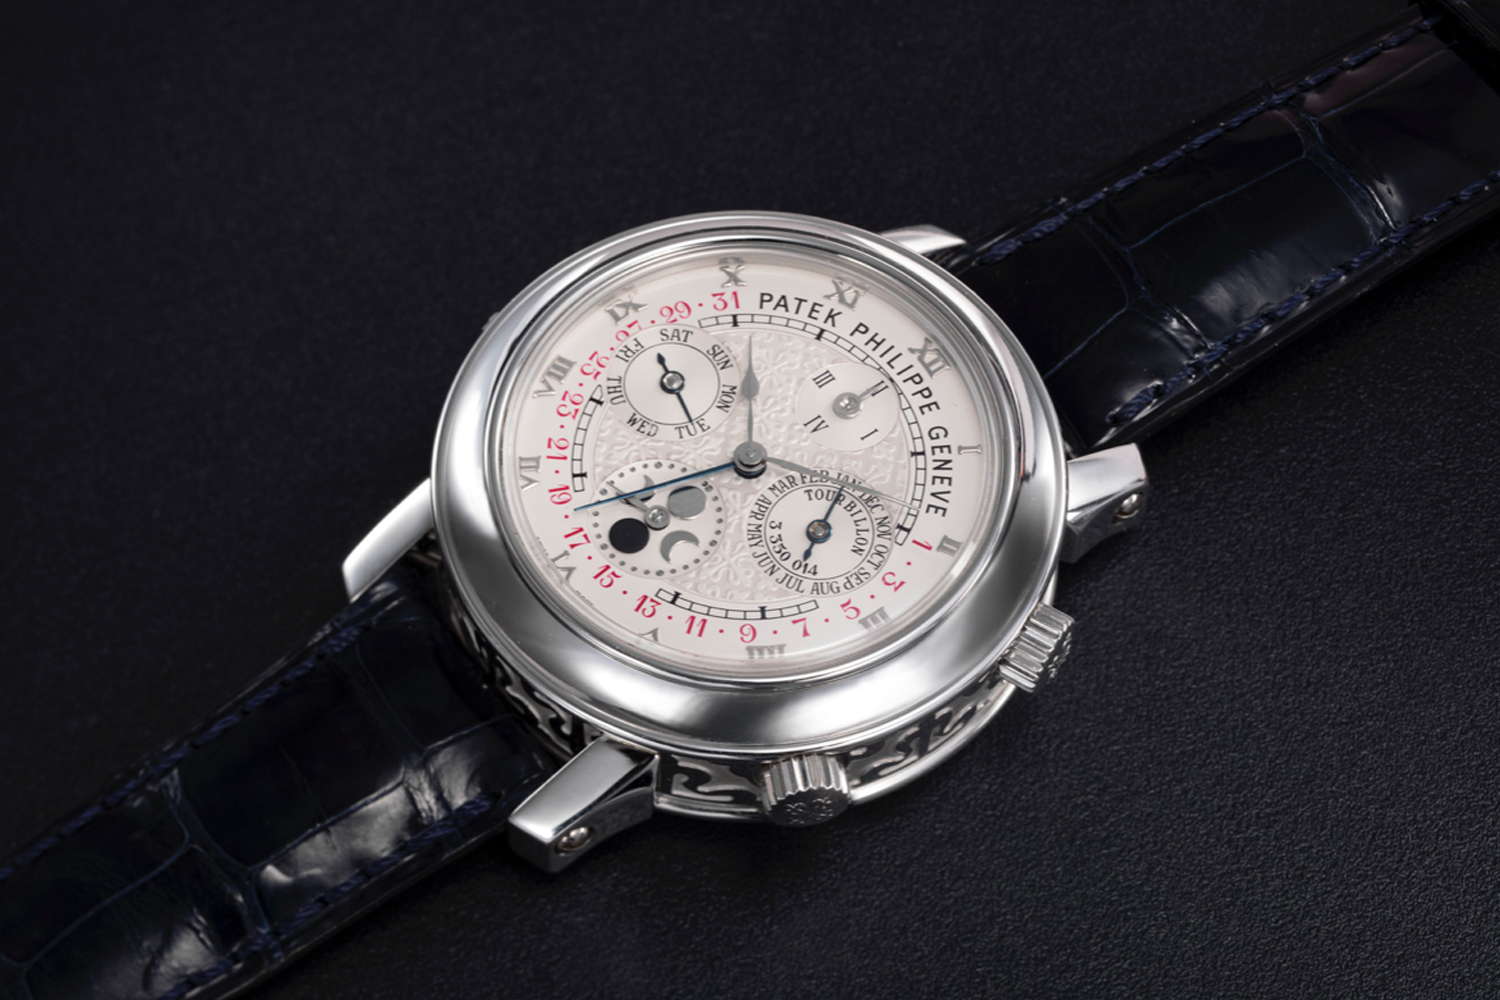 Christie's sold the Patek Philippe's Sky Moon Tourbillon Ref. 5002 for CHF1.4 million at its Dubai Edit in March. It set the record for the most expensive watch sold at auction in the Middle East and the new auction record for any watch sold online at Christie's.